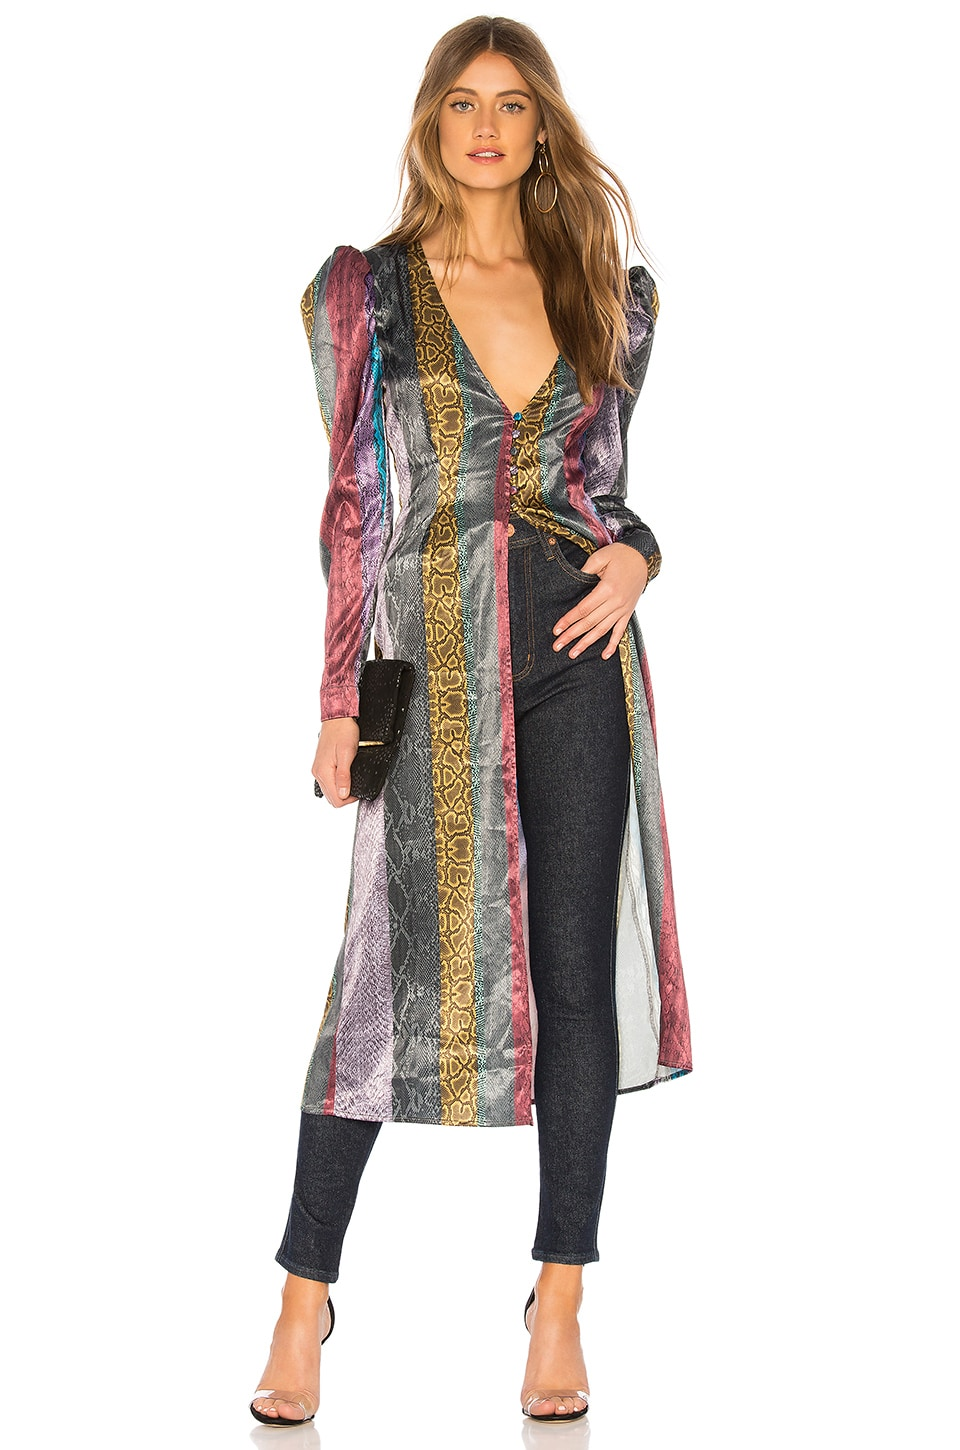 L'Academie The Faye Duster Dress in Multi Snake